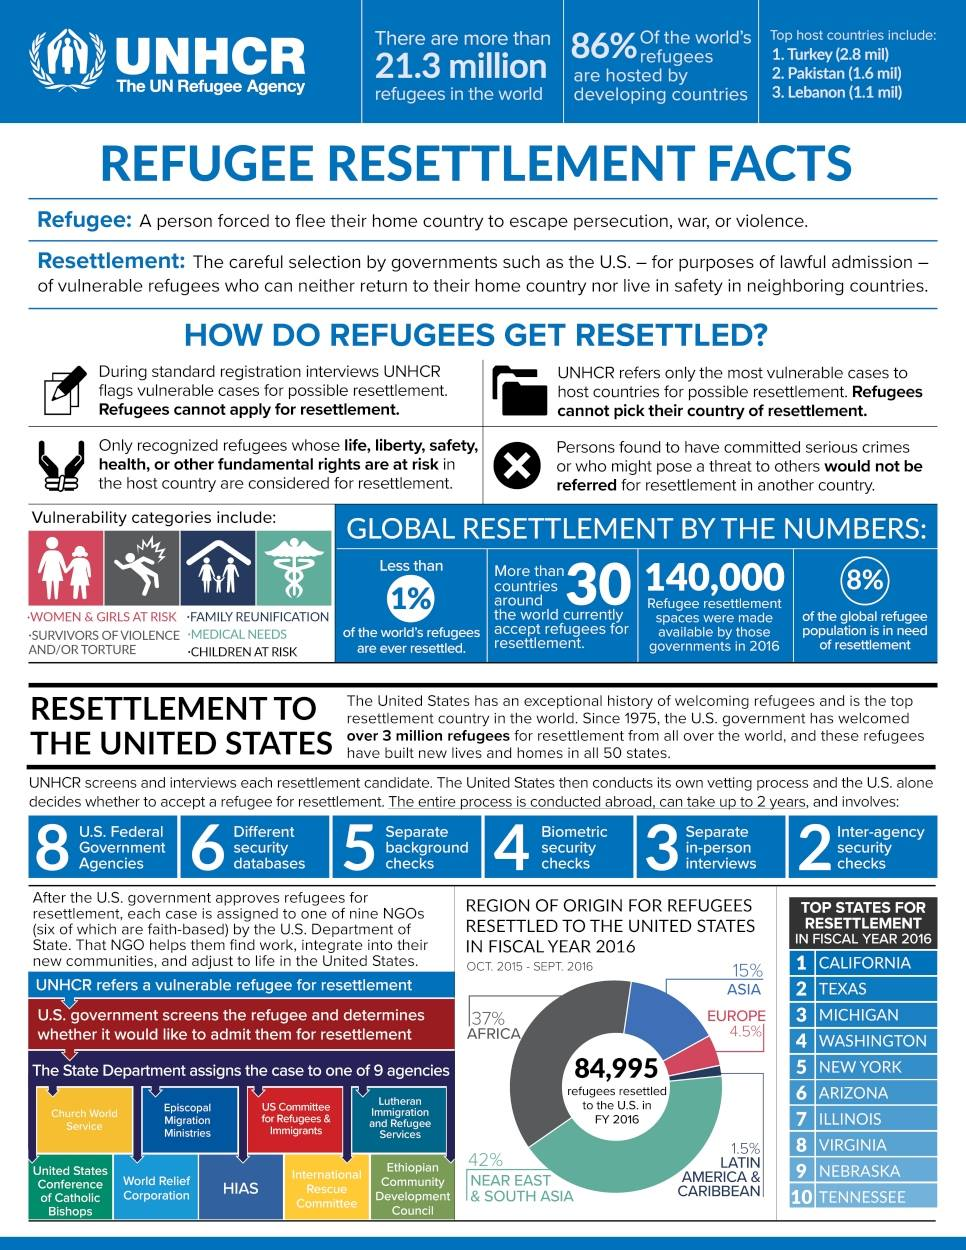 Source: UNHCR, the UN Refugee Agency